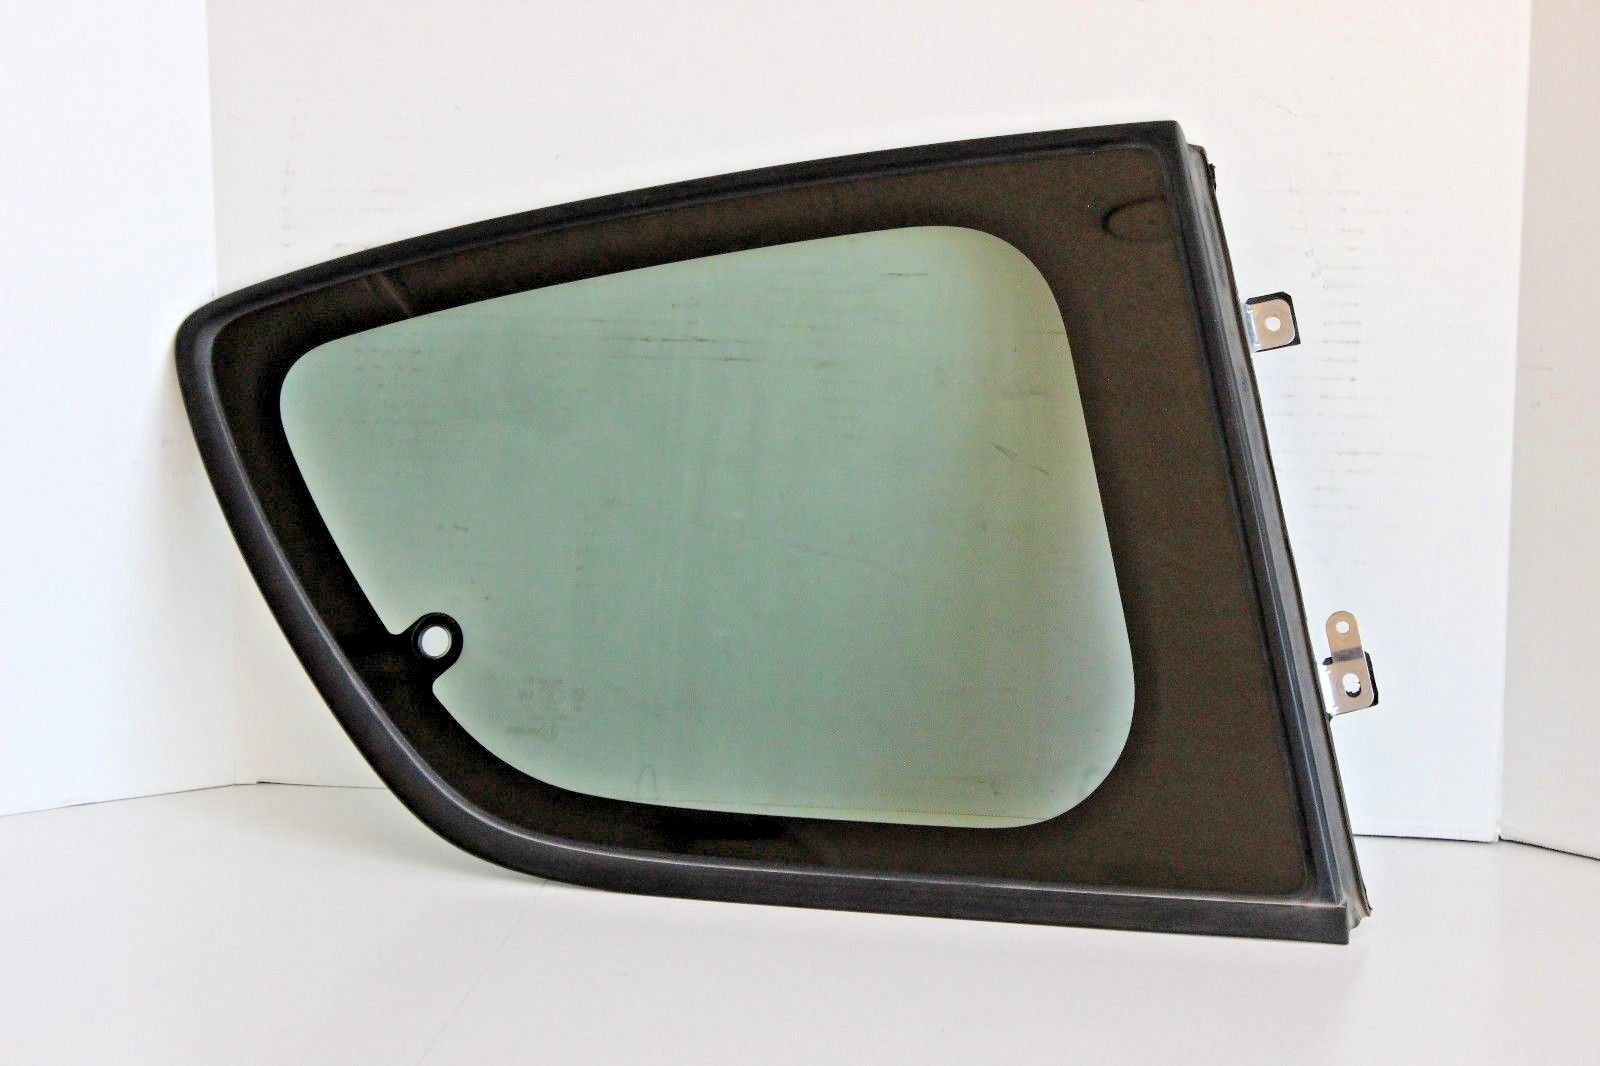 DIRECT REPLACEMENT WING MIRROR GLASS FOR LEXUS RX 330 2003-2008 LEFT SIDE HEATED